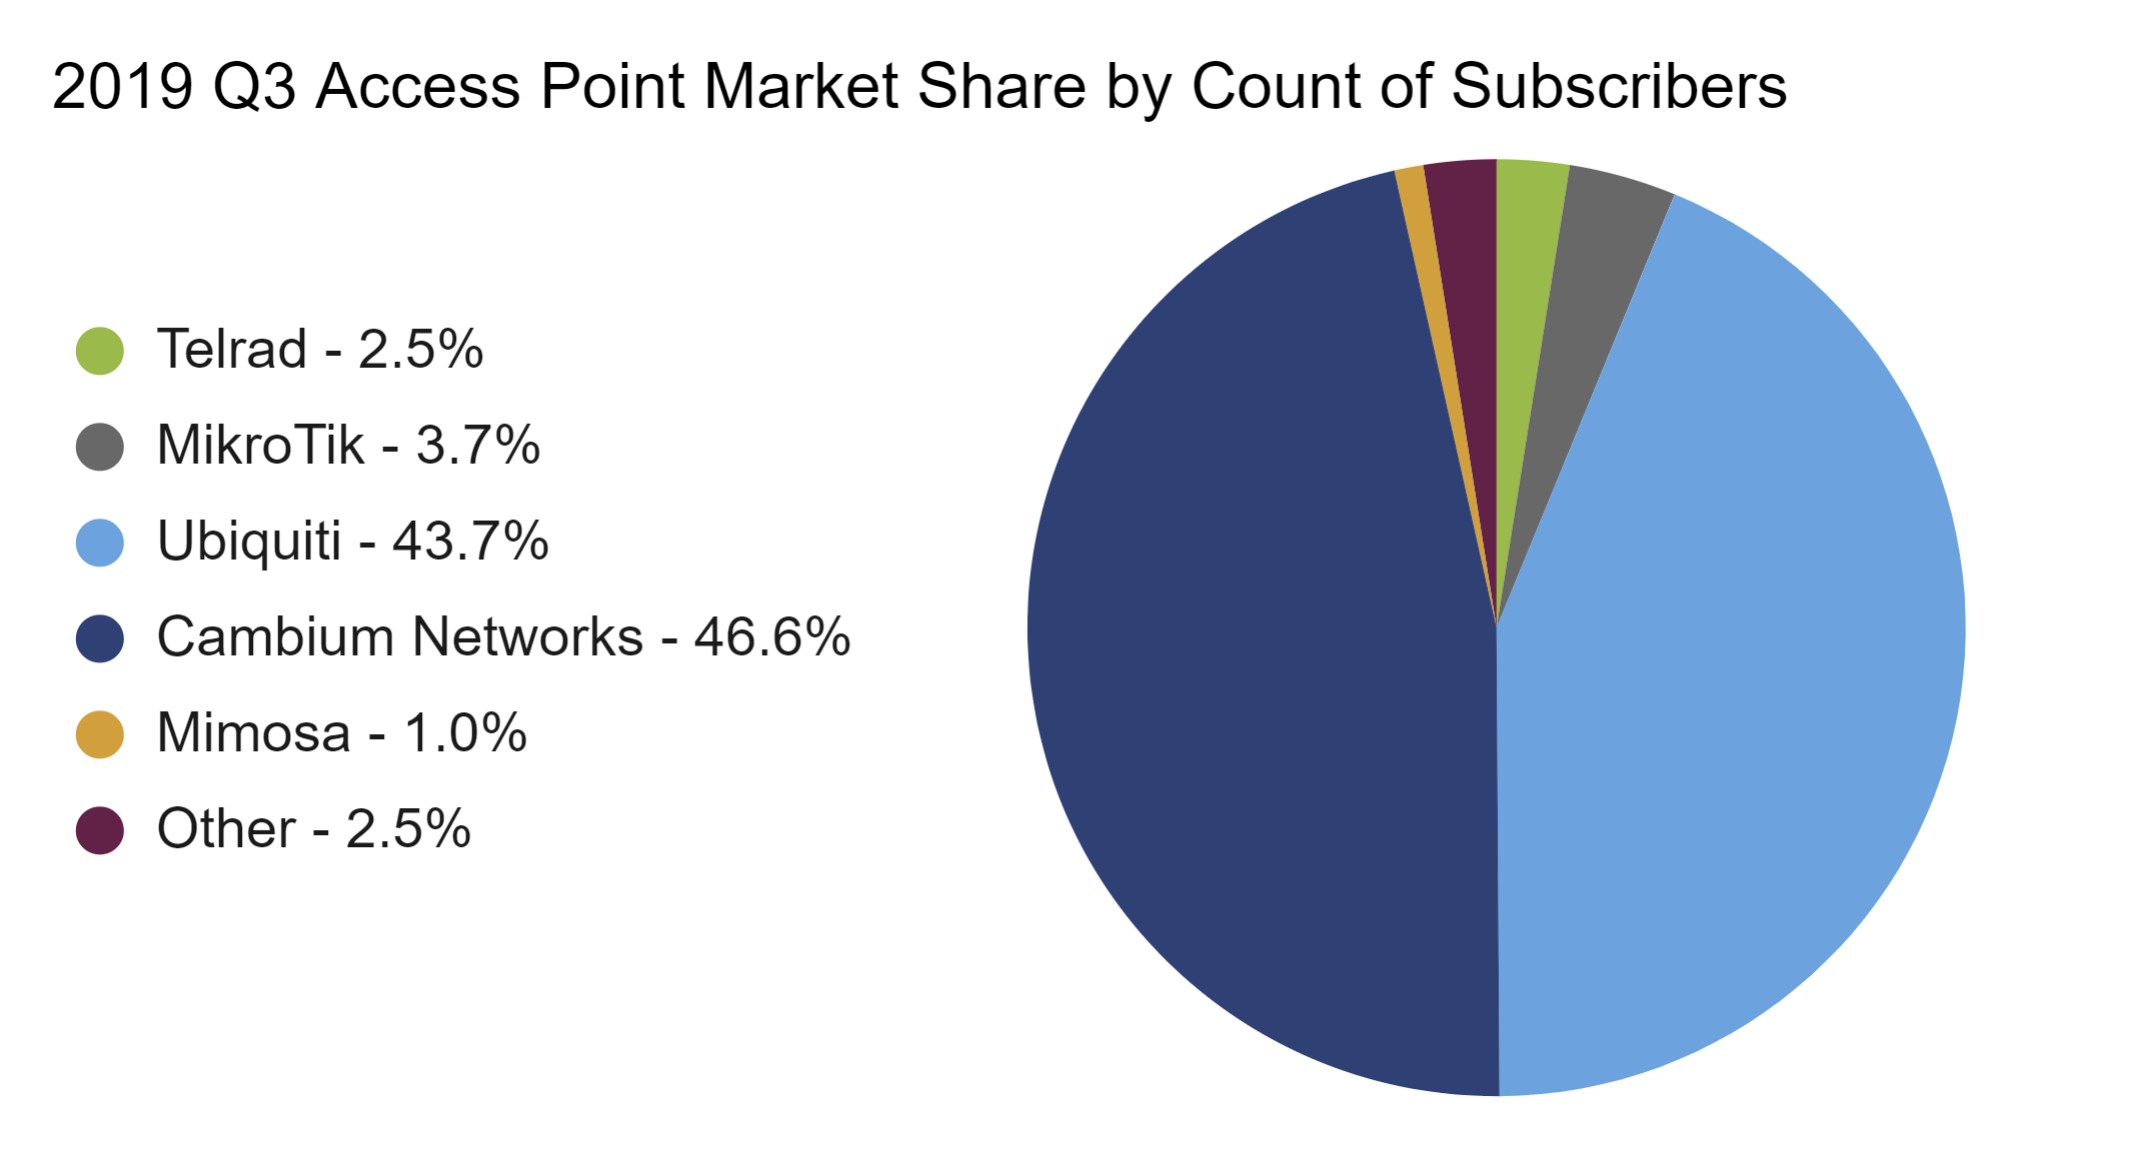 Access Point Comparison - 2019 Q3 AP Market Share by Count of Subs